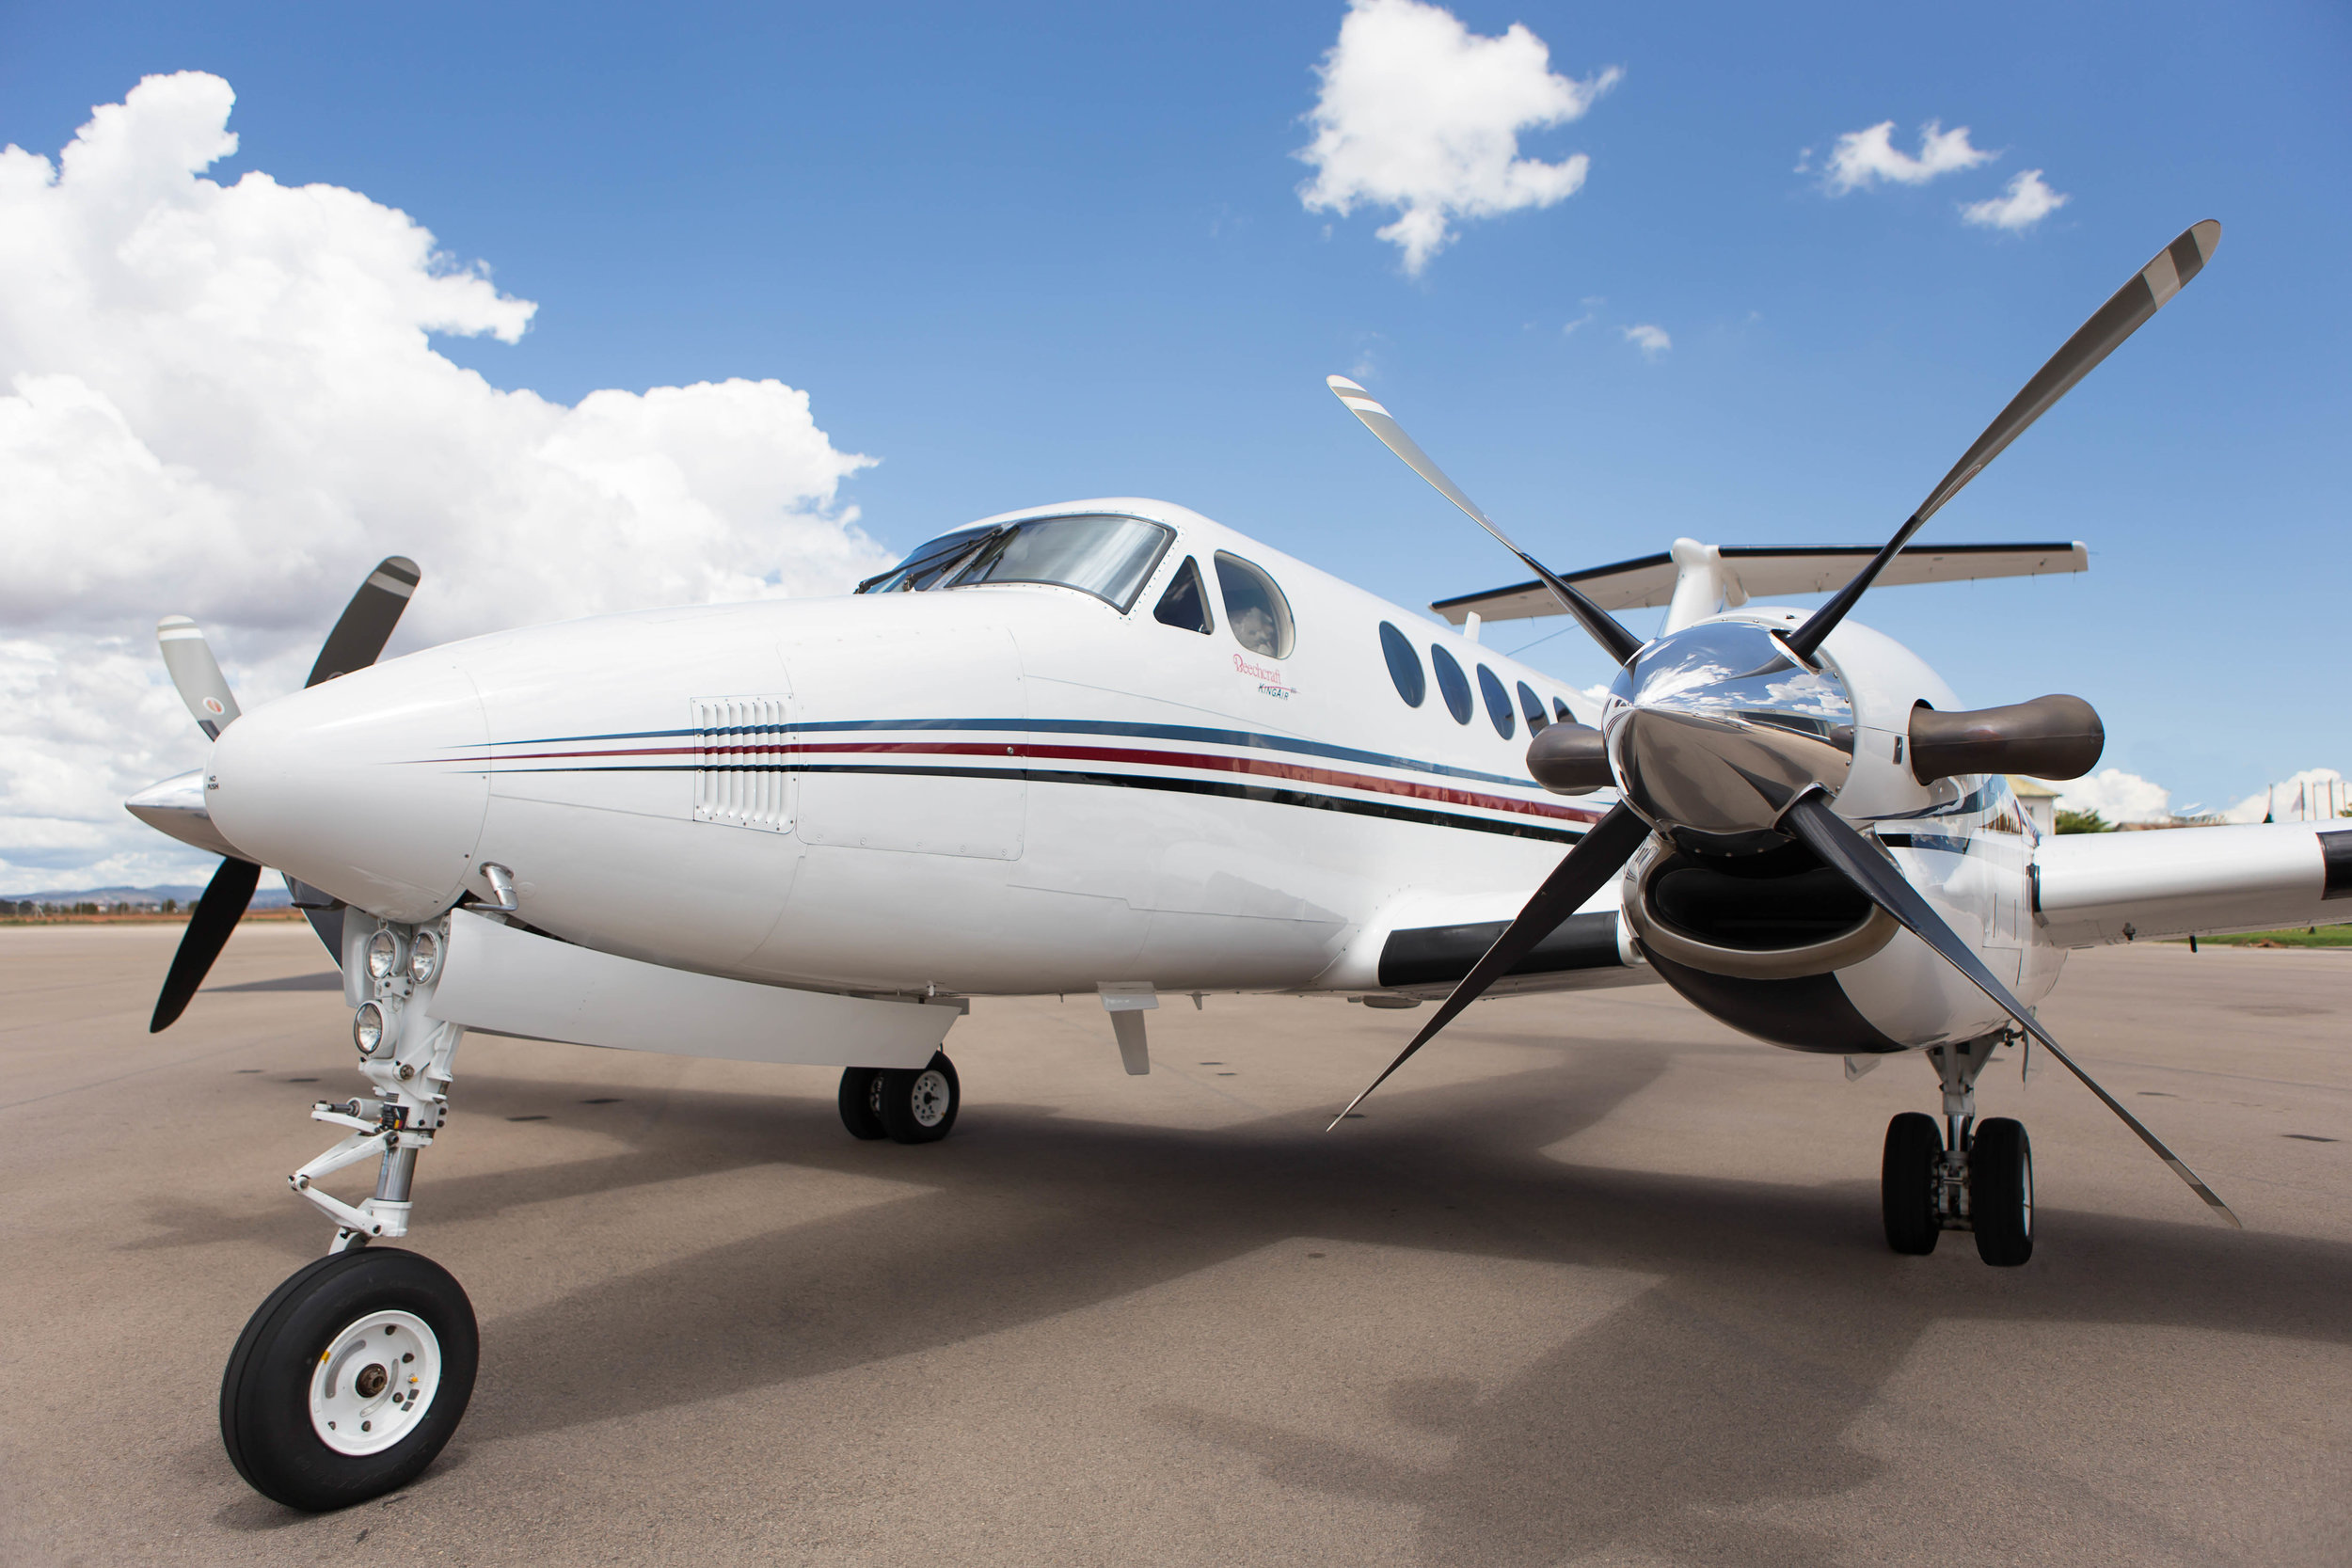 KingAir B200  King Air B200 pressurized  Crew : 2 pax  Passengers : 7 pax  Maximum cruising speed: 480 km/h